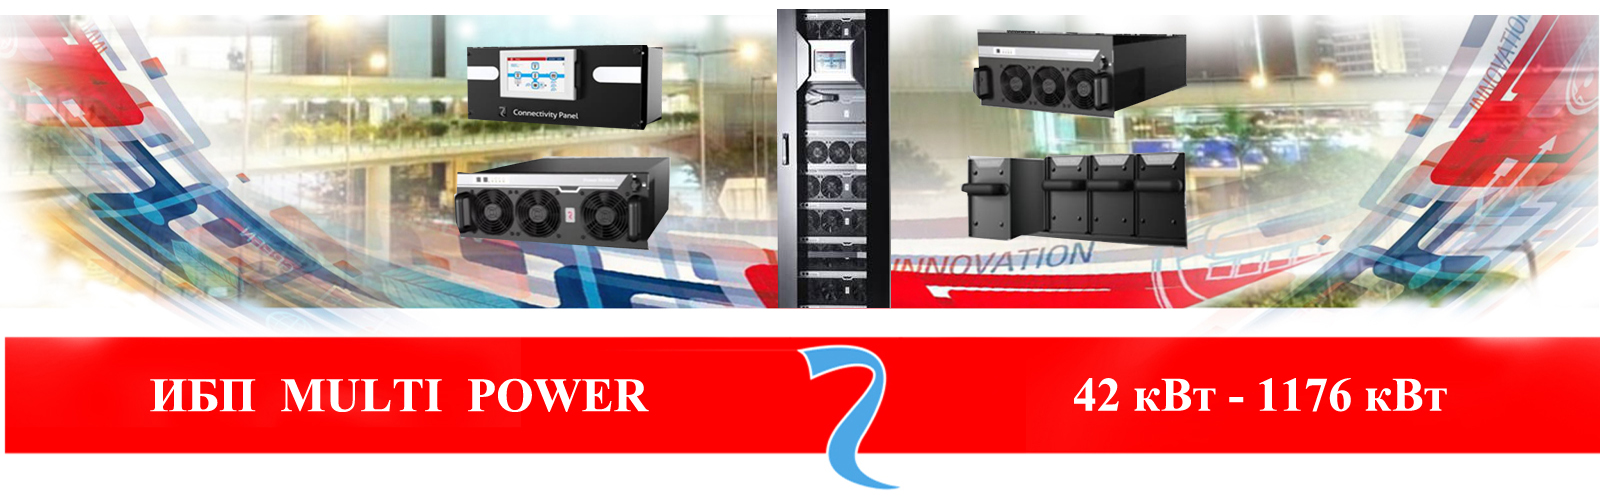 riello multi power